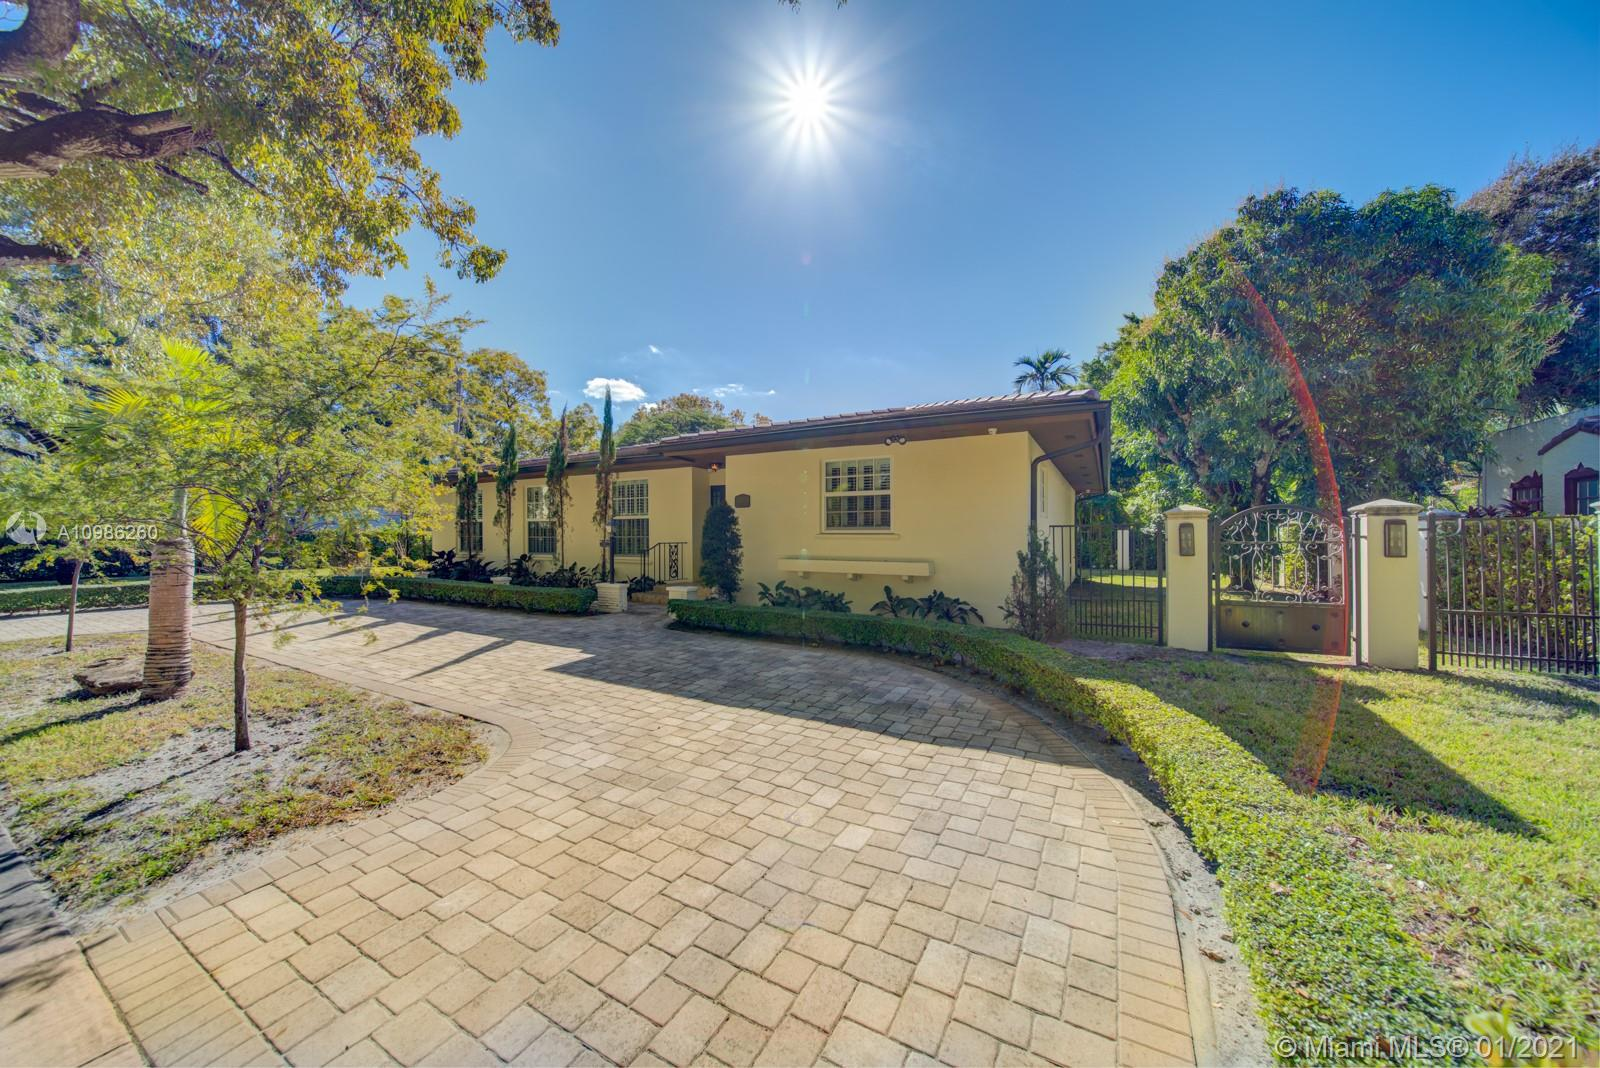 Details for 800 Valencia Ave, Coral Gables, FL 33134